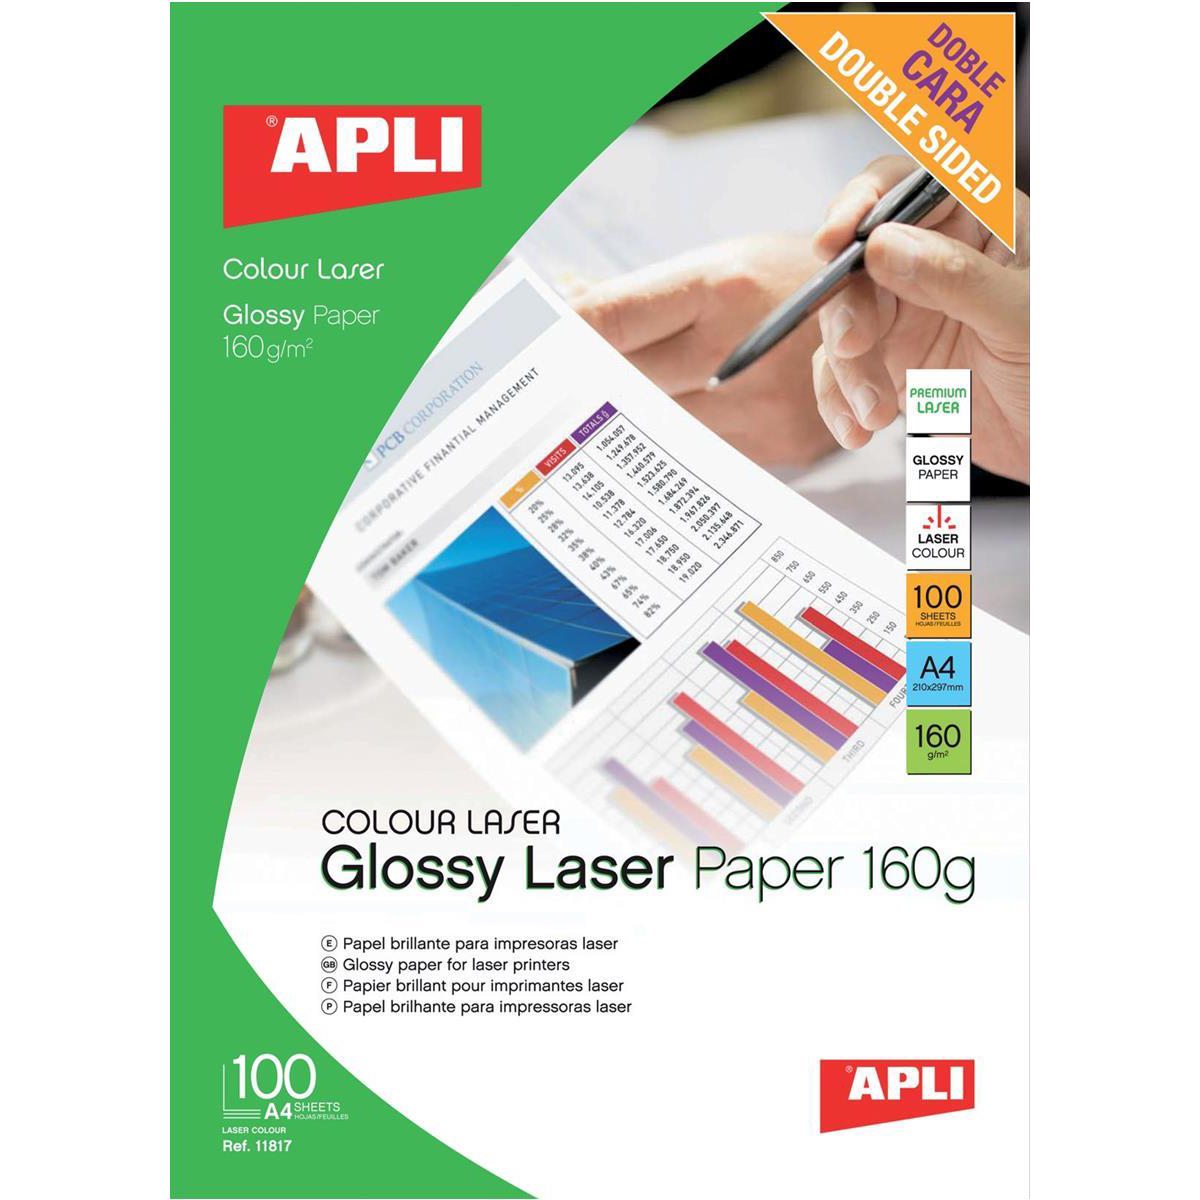 Apli Laser Paper Glossy Double-sided 160gsm A4 Ref 11817 [100 Sheets]